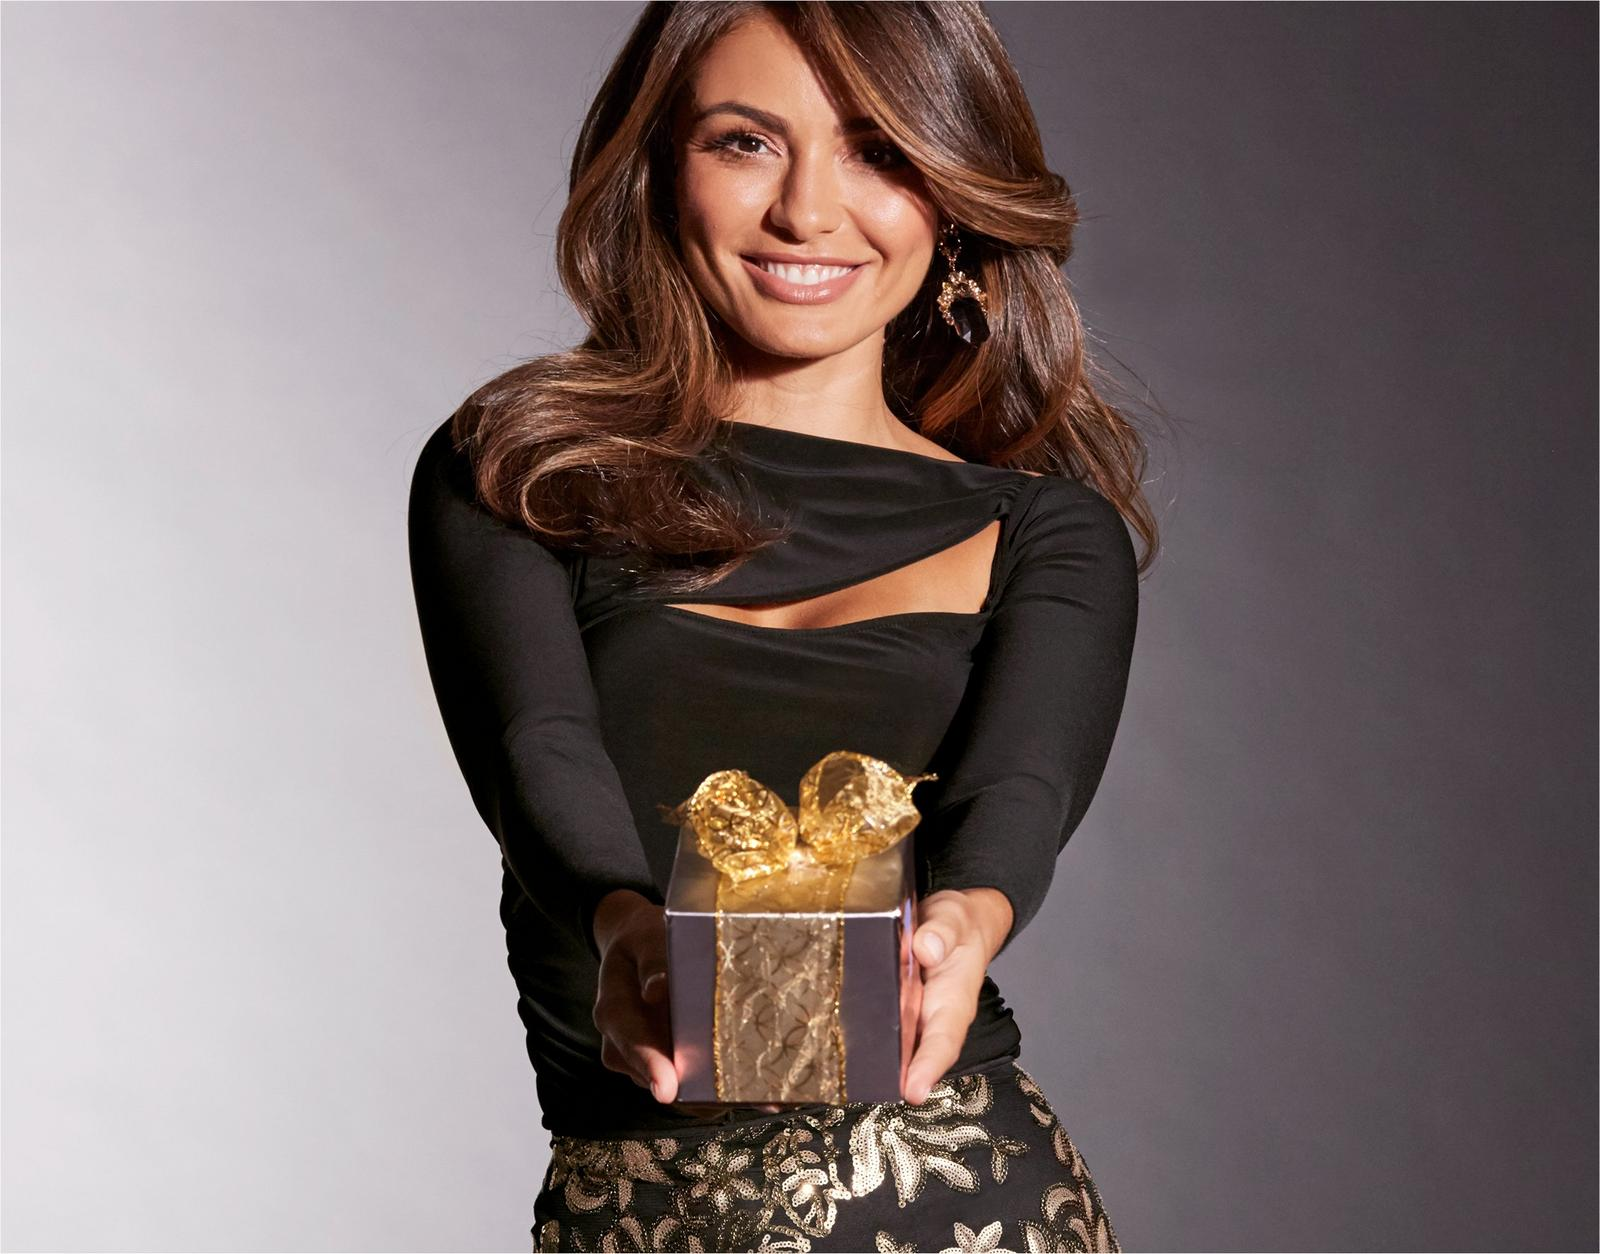 model wearing black cut out top with gold and black skirt while holding a gift.